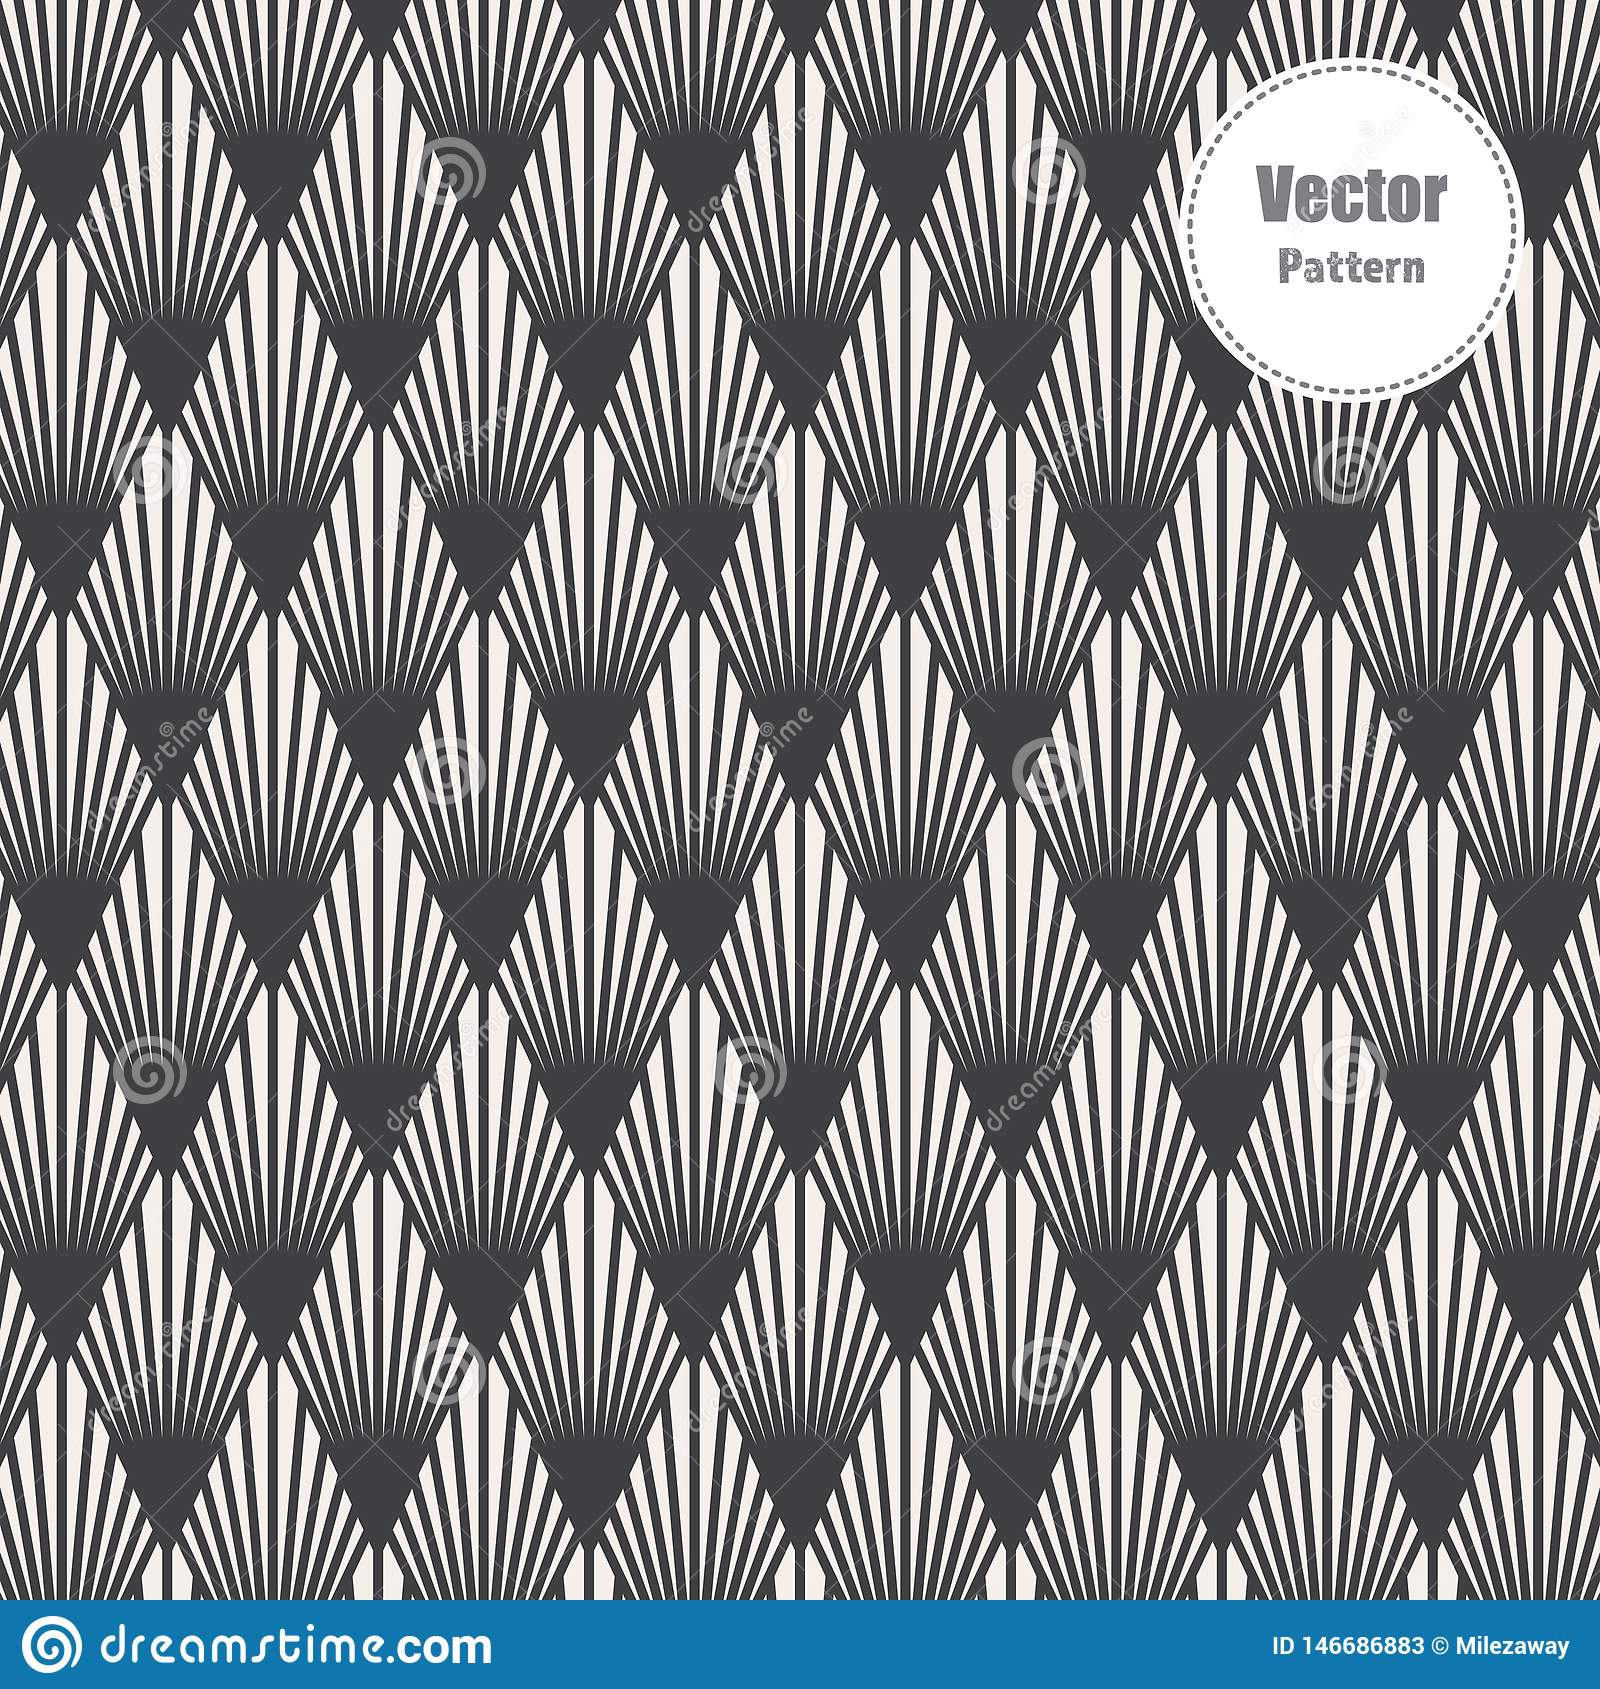 Modern Japanese motif. Interlocking triangles tessellation background. Image with repeated scallops. Fish scale.